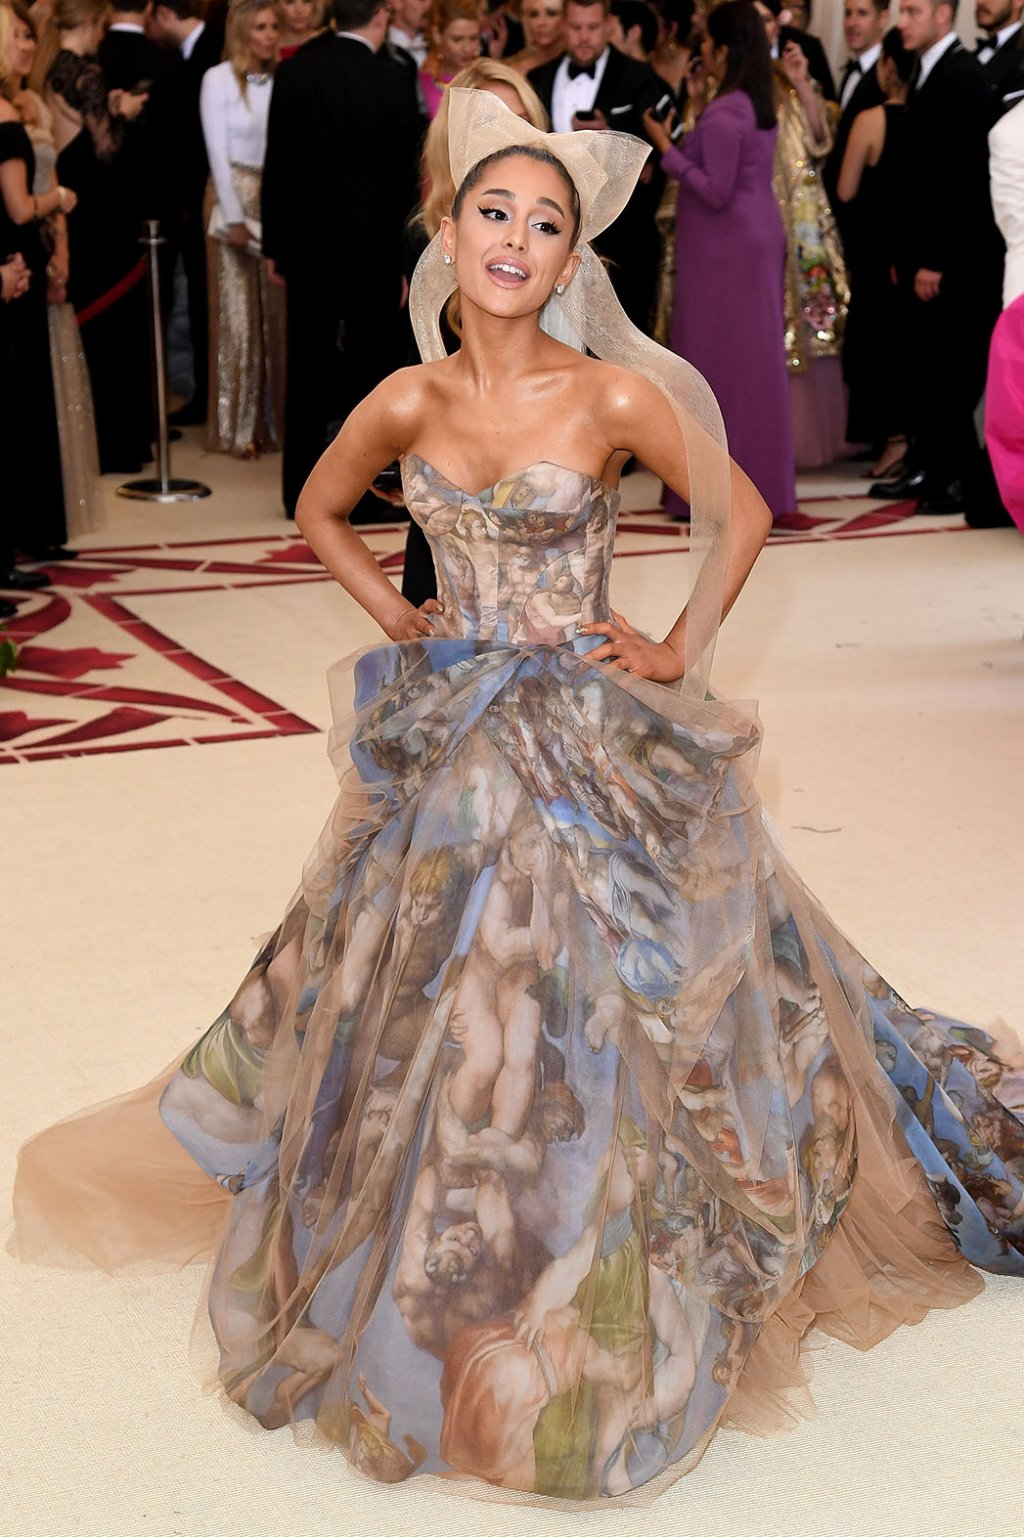 Ariana Grande wearing custom Vera Wang. Picture by Karwai Tang/Getty Images